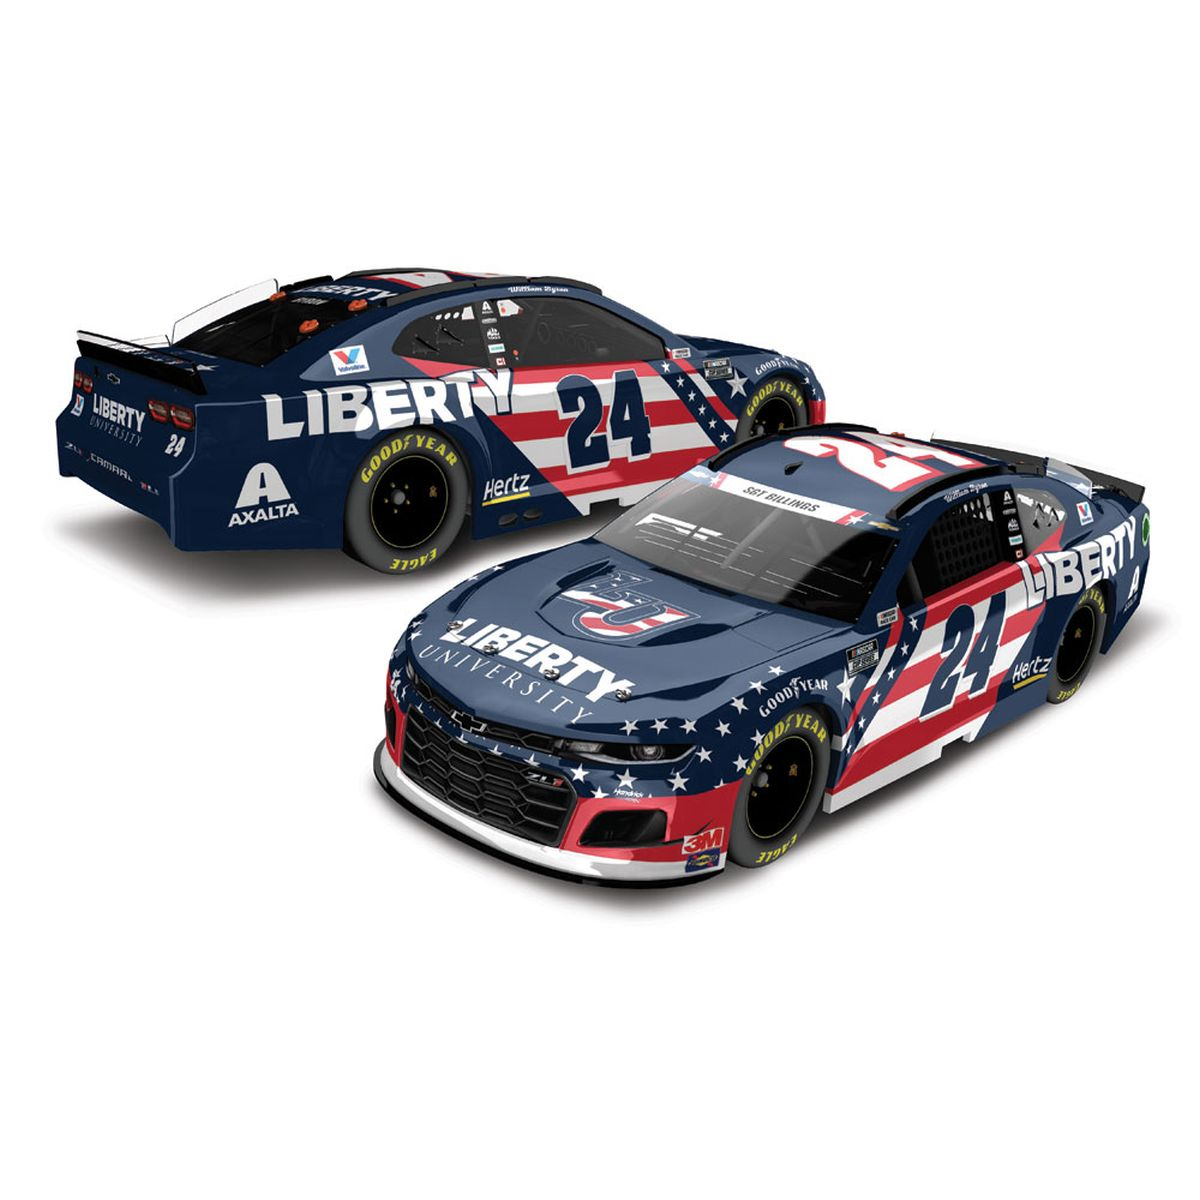 William Byron #24 2020 Liberty University Patriotic NASCAR HO 1:24 - Die Cast